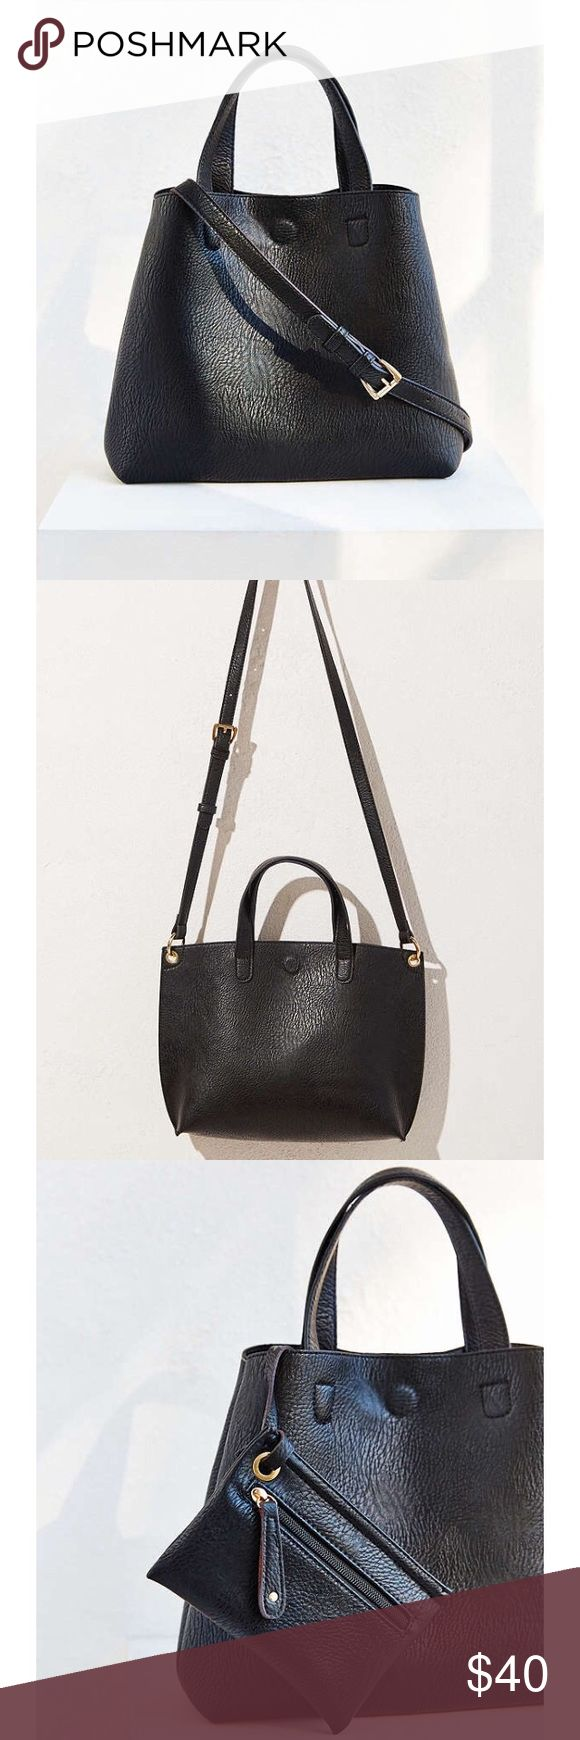 """Mini Reversible Faux Leather Tote Bag """"Mini reversible tote in full-grain faux leather topped with carry handles + a long, adjustable strap that detaches for carrying options. Includes a clip-on zip pouch topped with leather pulls at the interior, perfect for use as a matching wallet. Finished with a magnetic snap closure.  Faux Leather OS No flaws"""" Urban Outfitters Bags"""